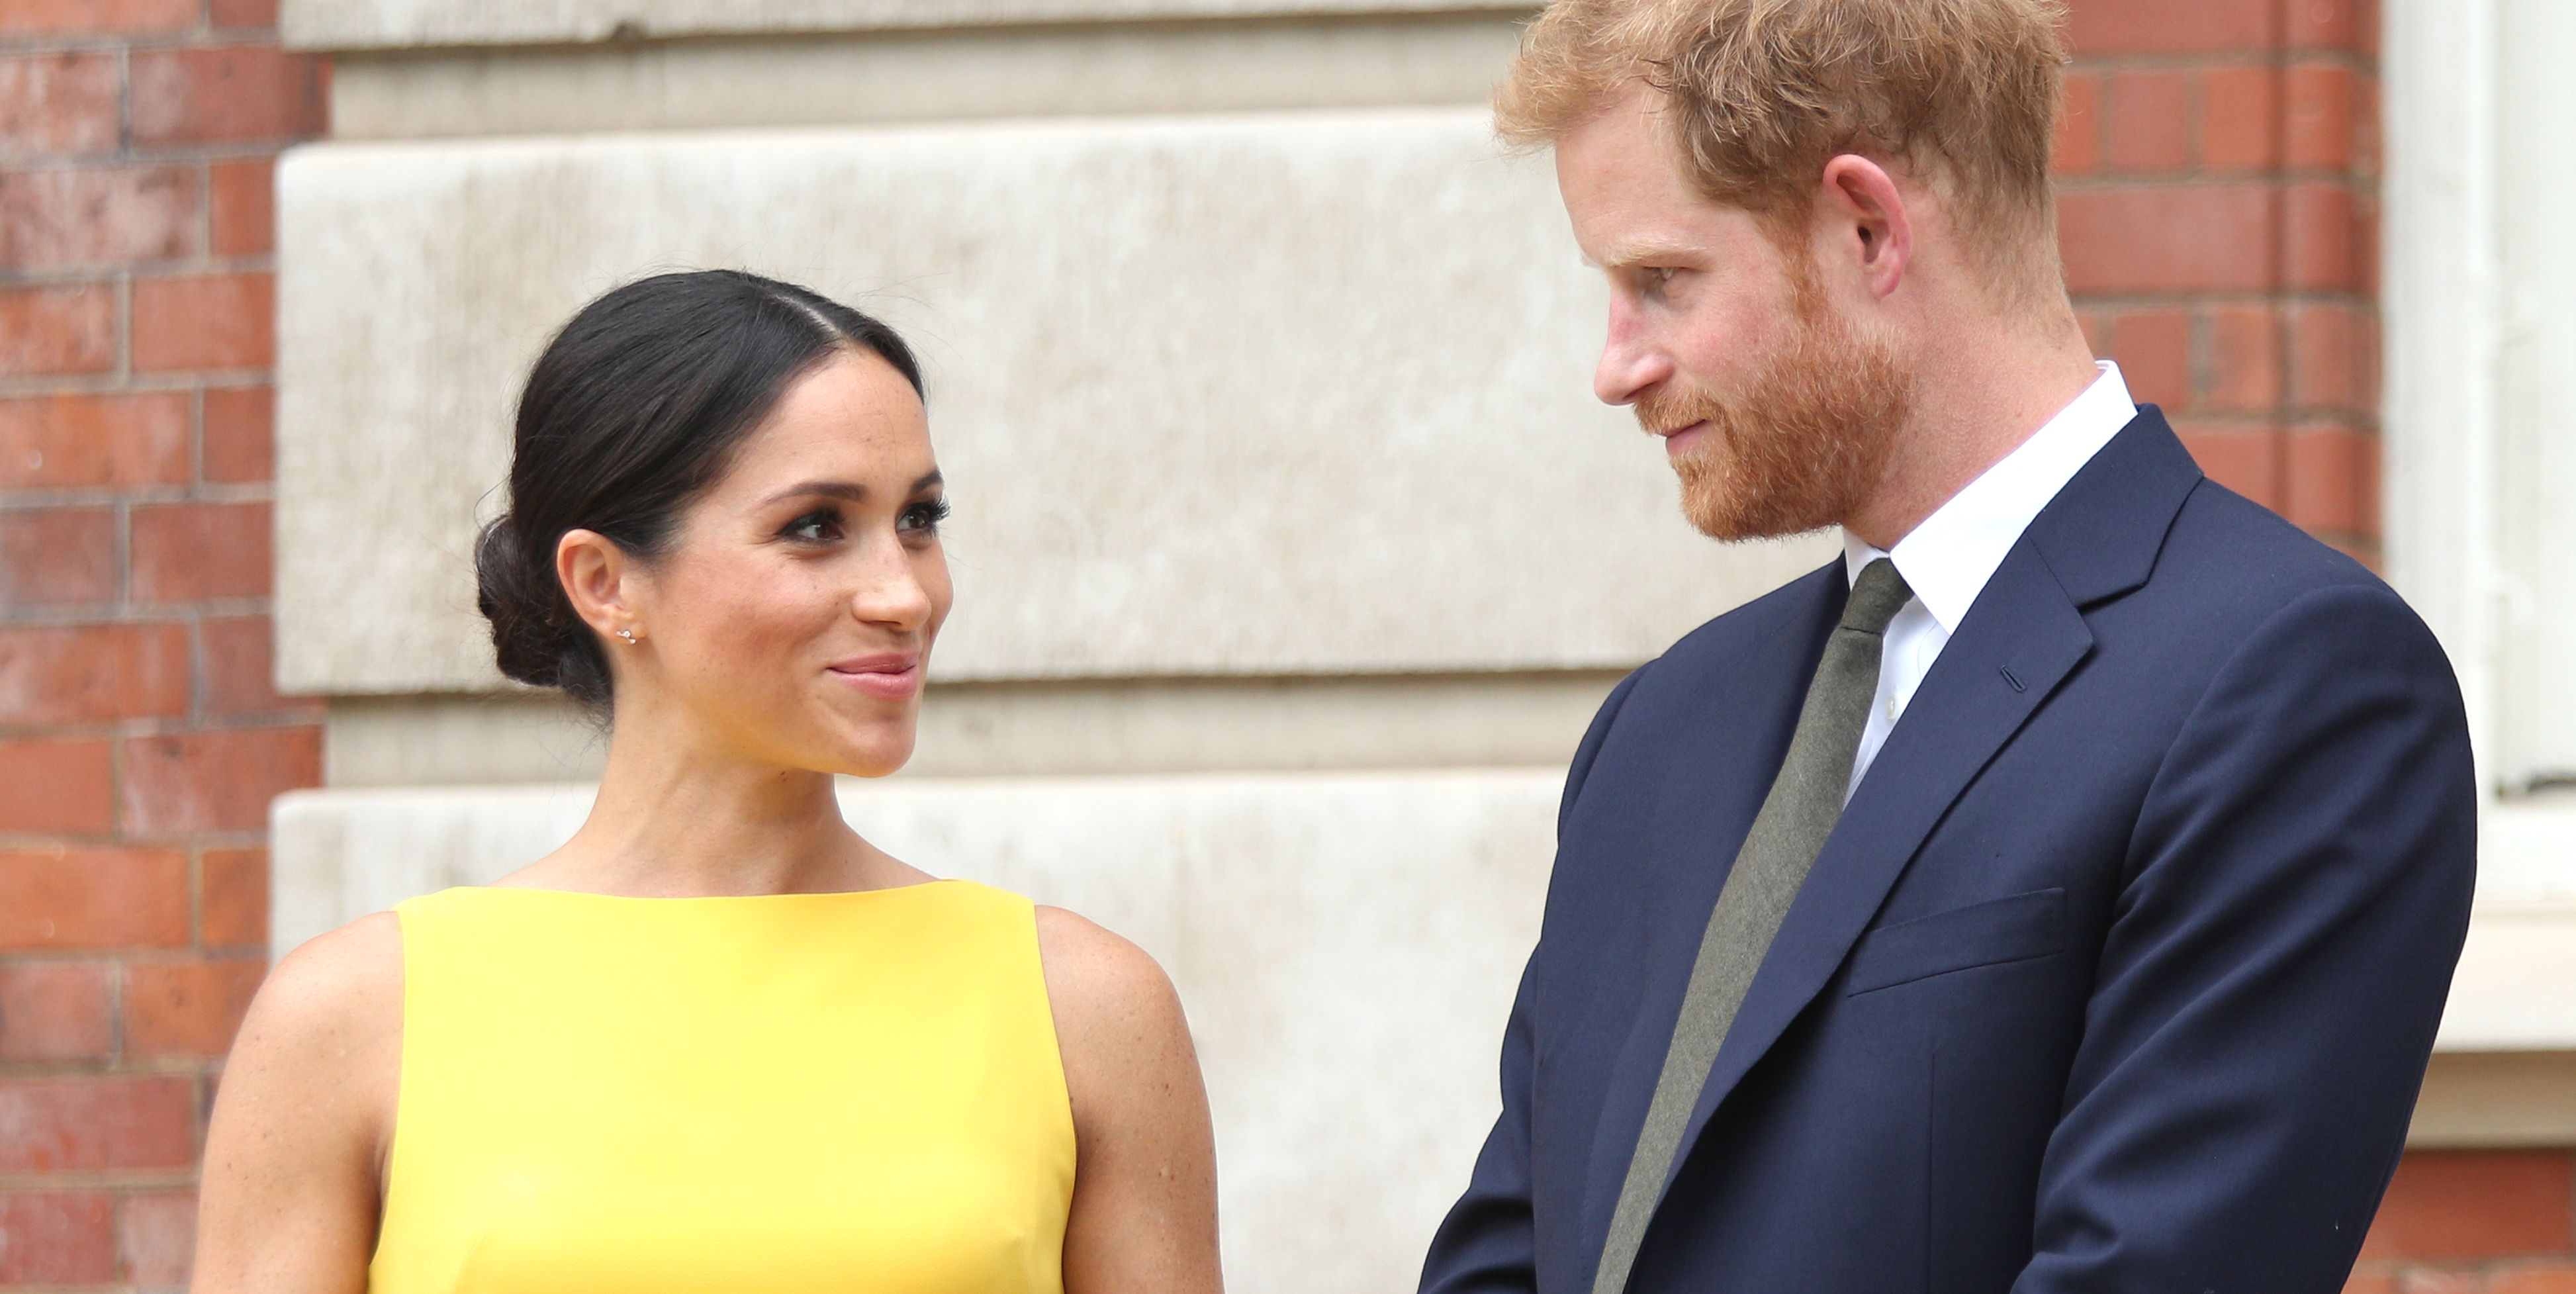 Meghan Markle and Prince Harry Are Fully Breaking Royal Baby Protocol